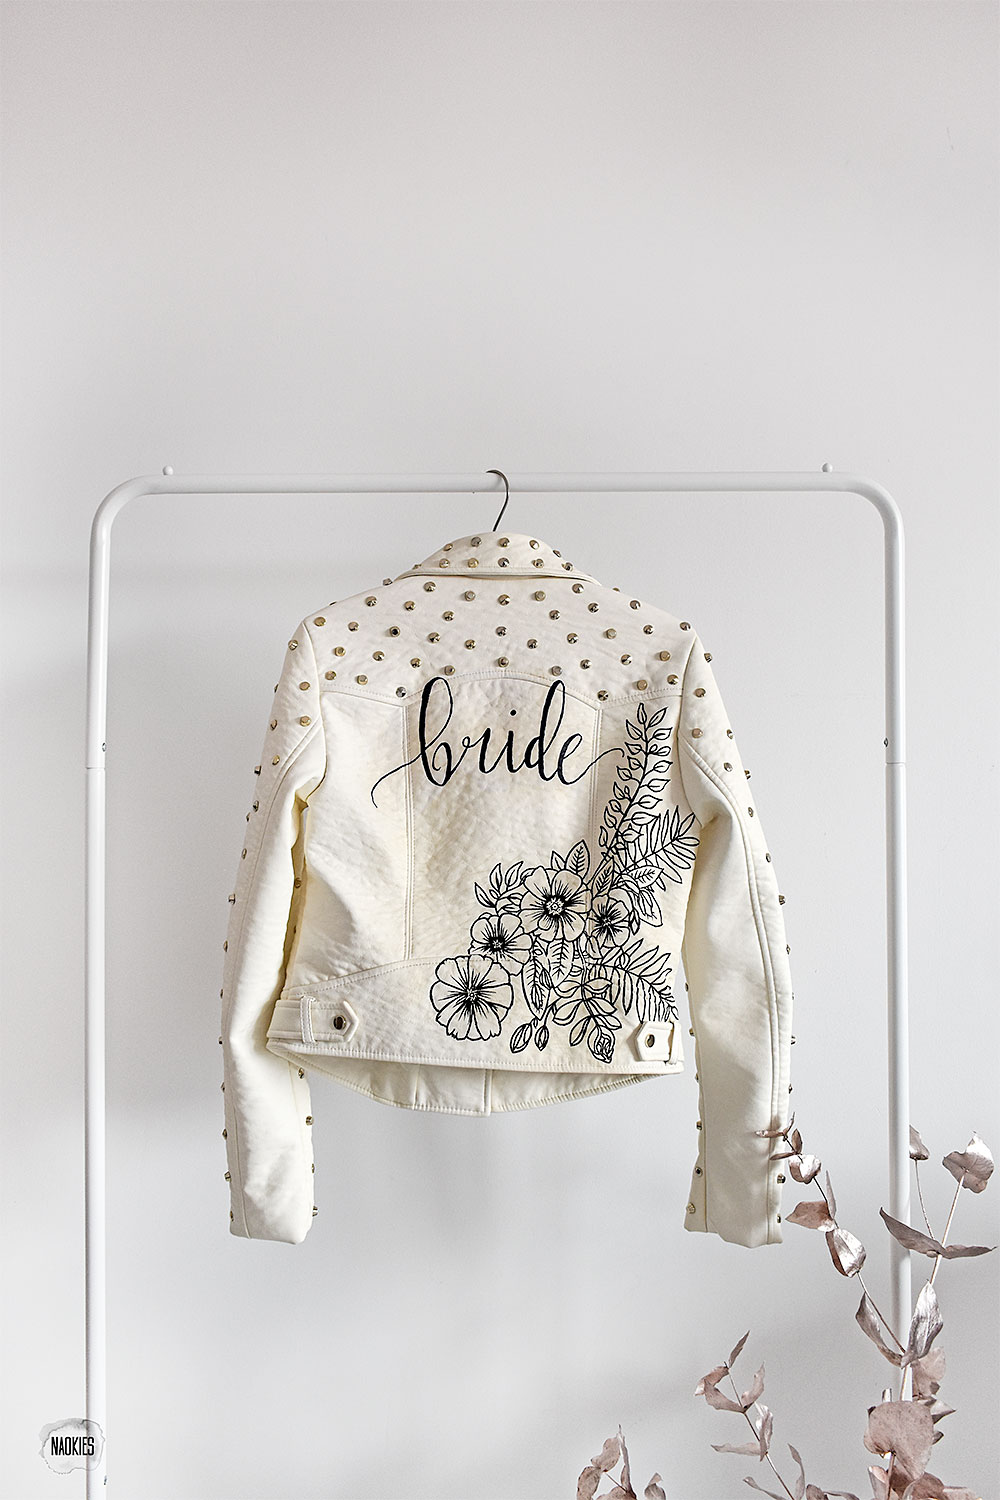 Customised leren jasje 'Bride' wit studs artwork studio Naokies